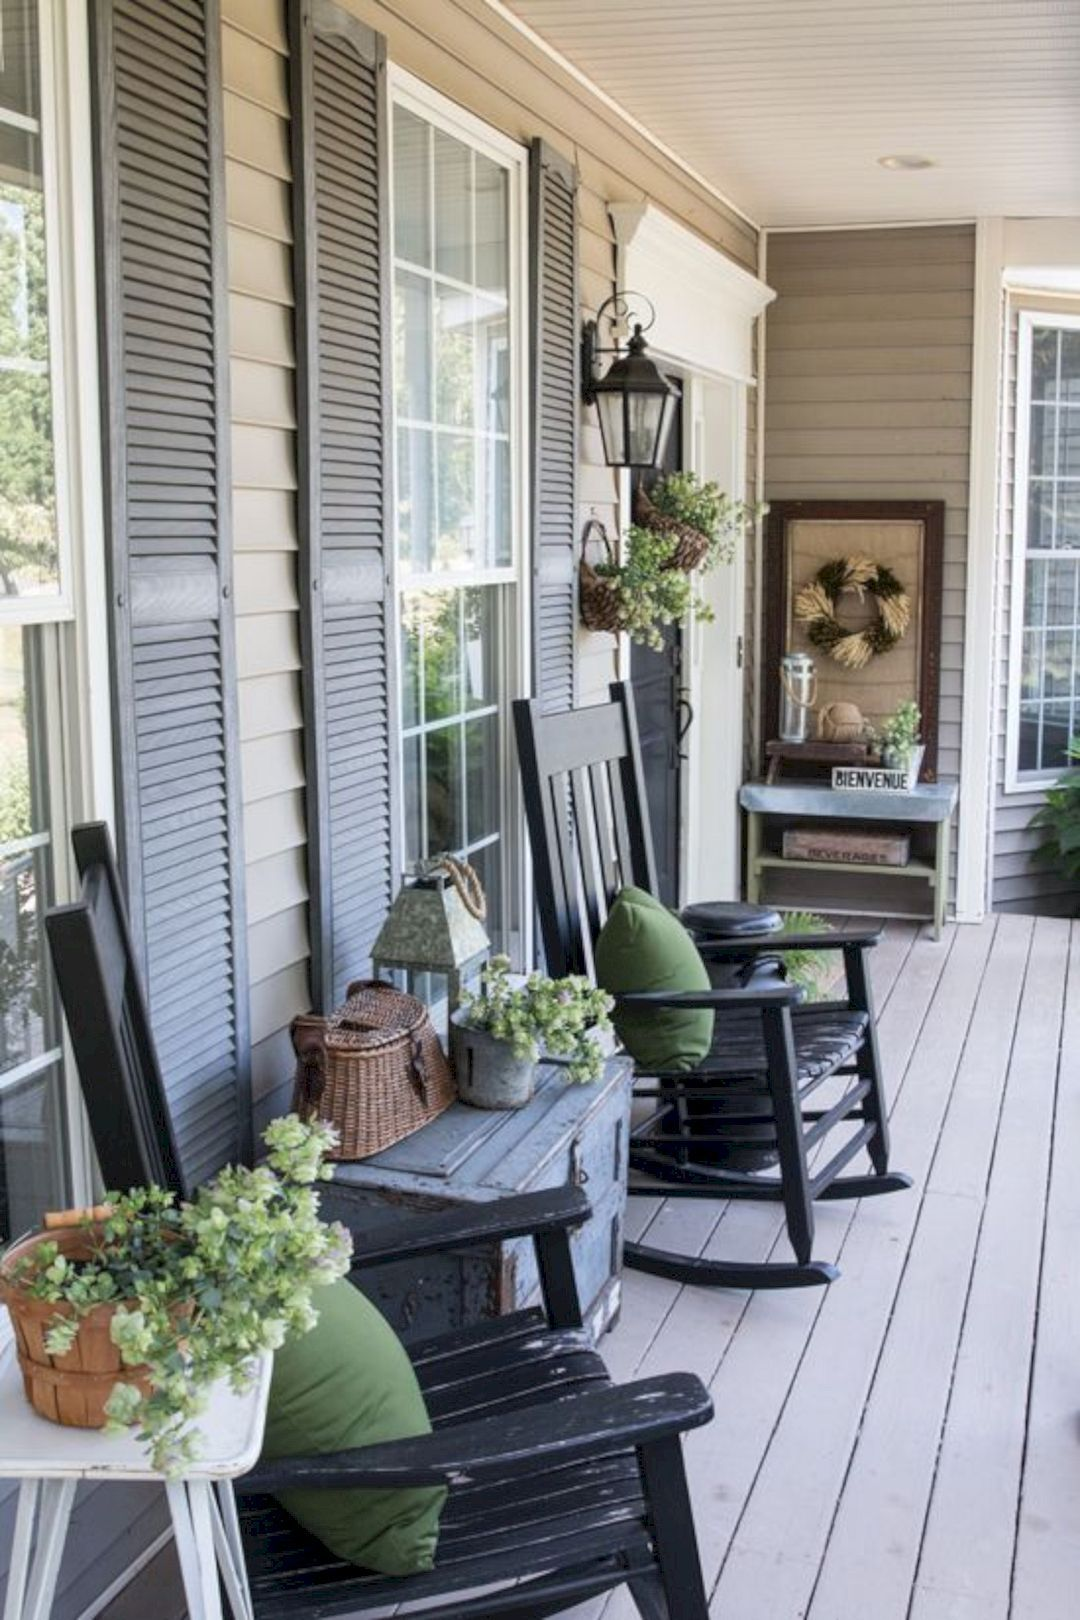 Superieur 17 Impressive Front Porch Decorating Ideas  Https://www.futuristarchitecture.com/29783 Front Porch Decorating Ideas.html